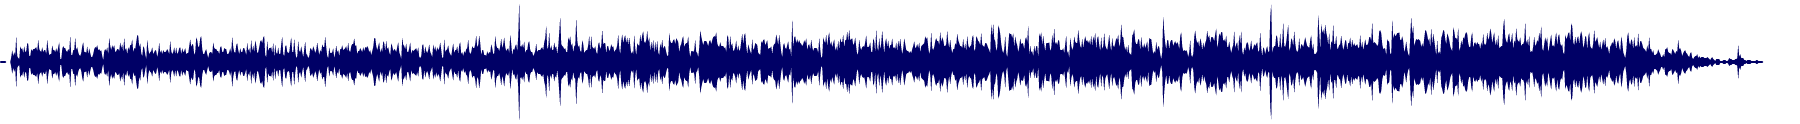 waveform of track #70215